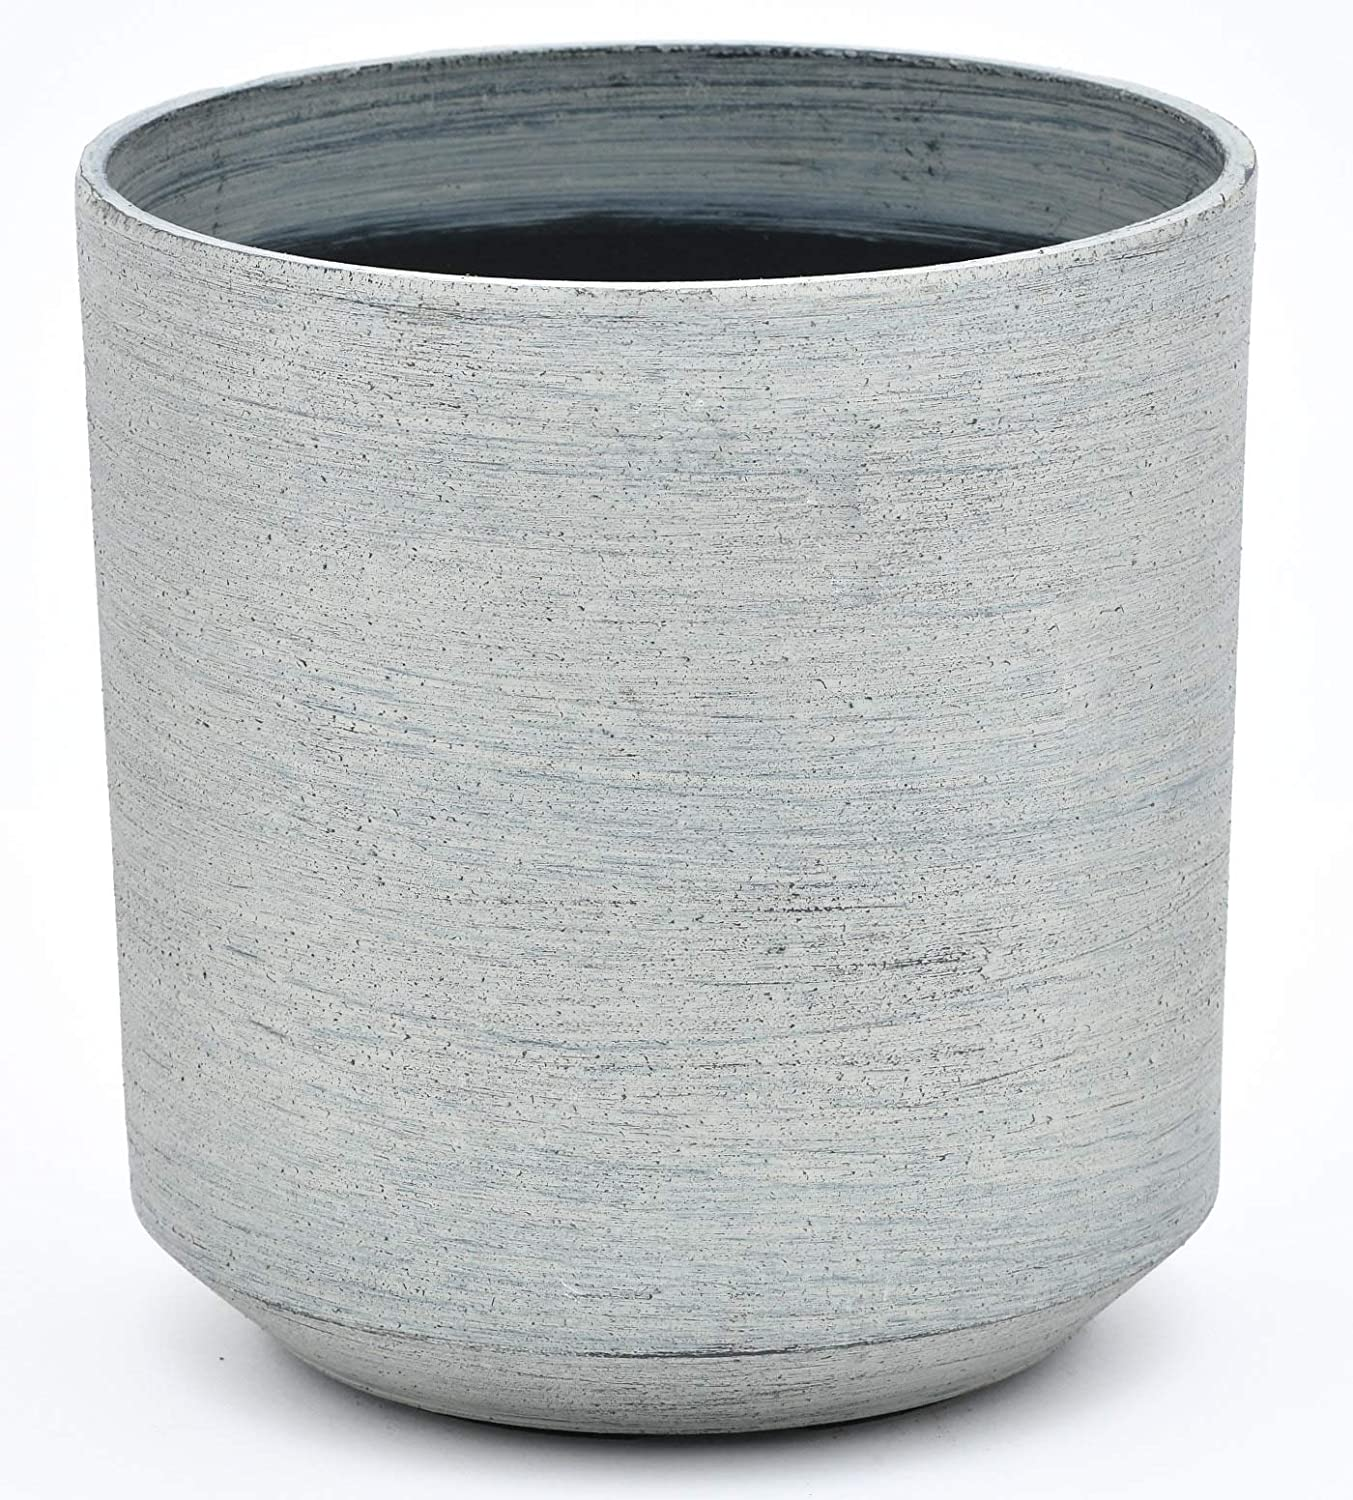 TABOR TOOLS Plastic Round Planters, 9 Inch, Light Weight, Includes Drainage Hole with Plug, Natural Modern Look and Stylish Finish. VB102A. Matte Finish – Stone